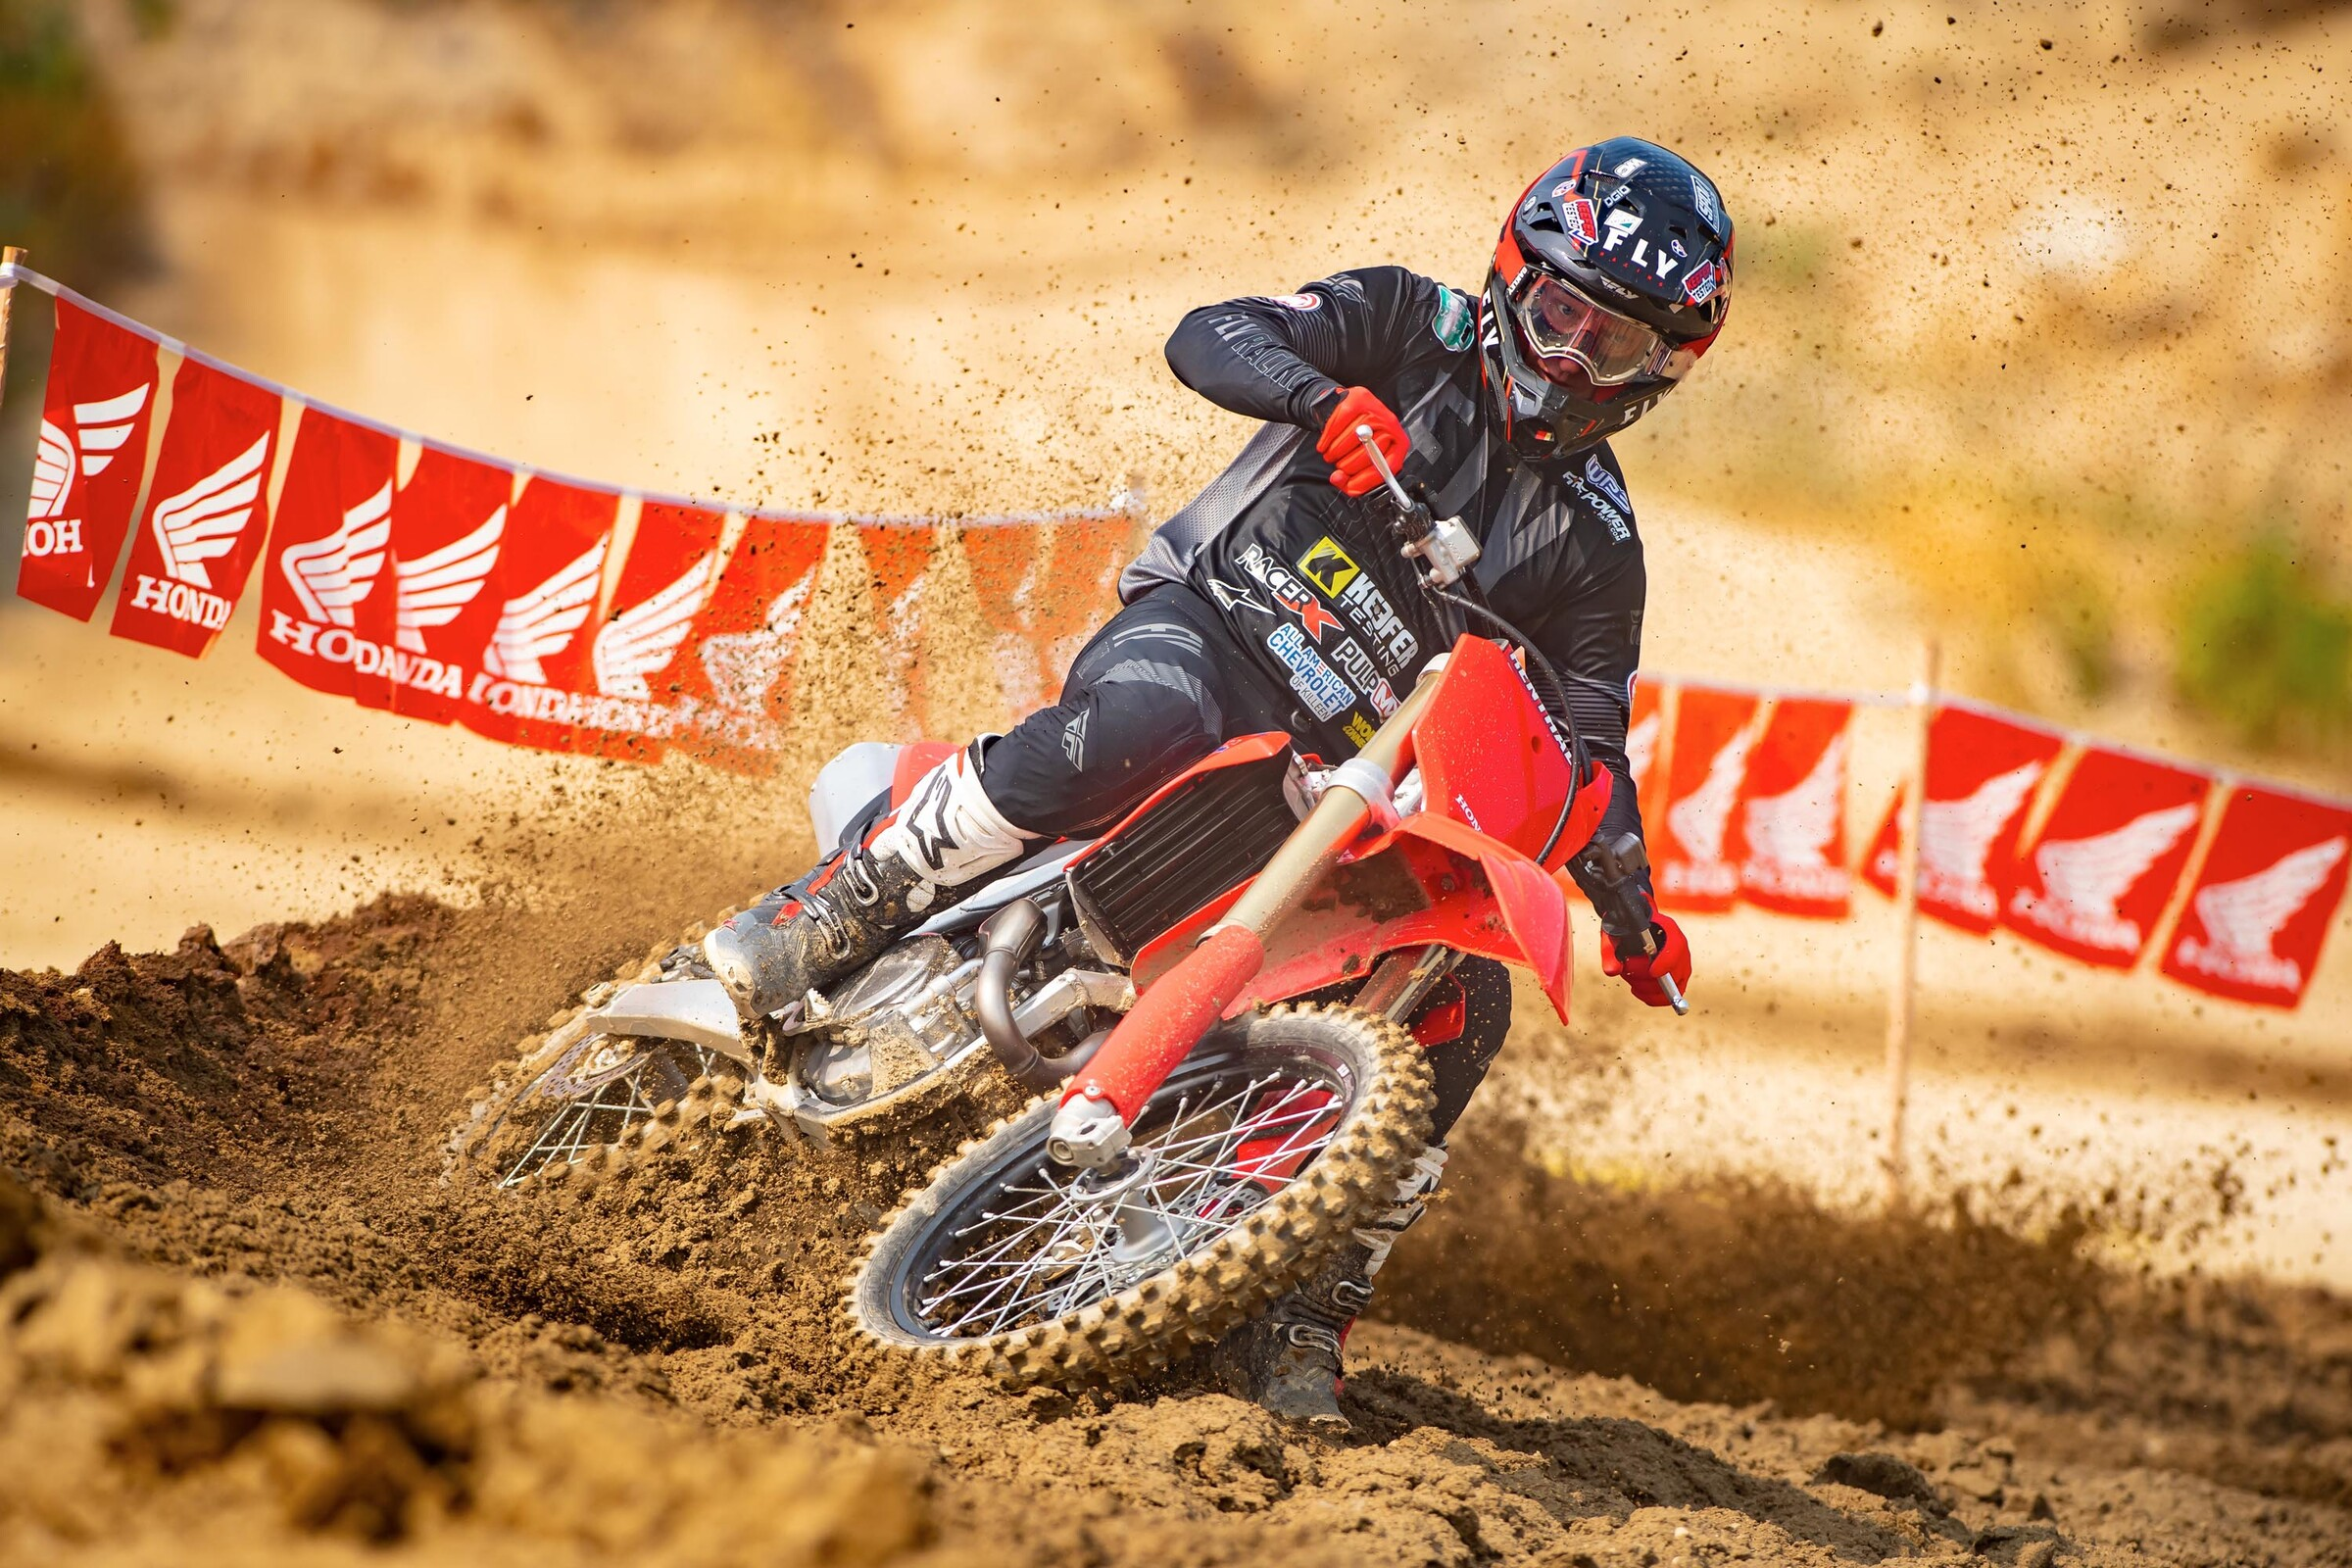 All-New 2021 Honda CRF450R Bike Introduction Video - Racer ...